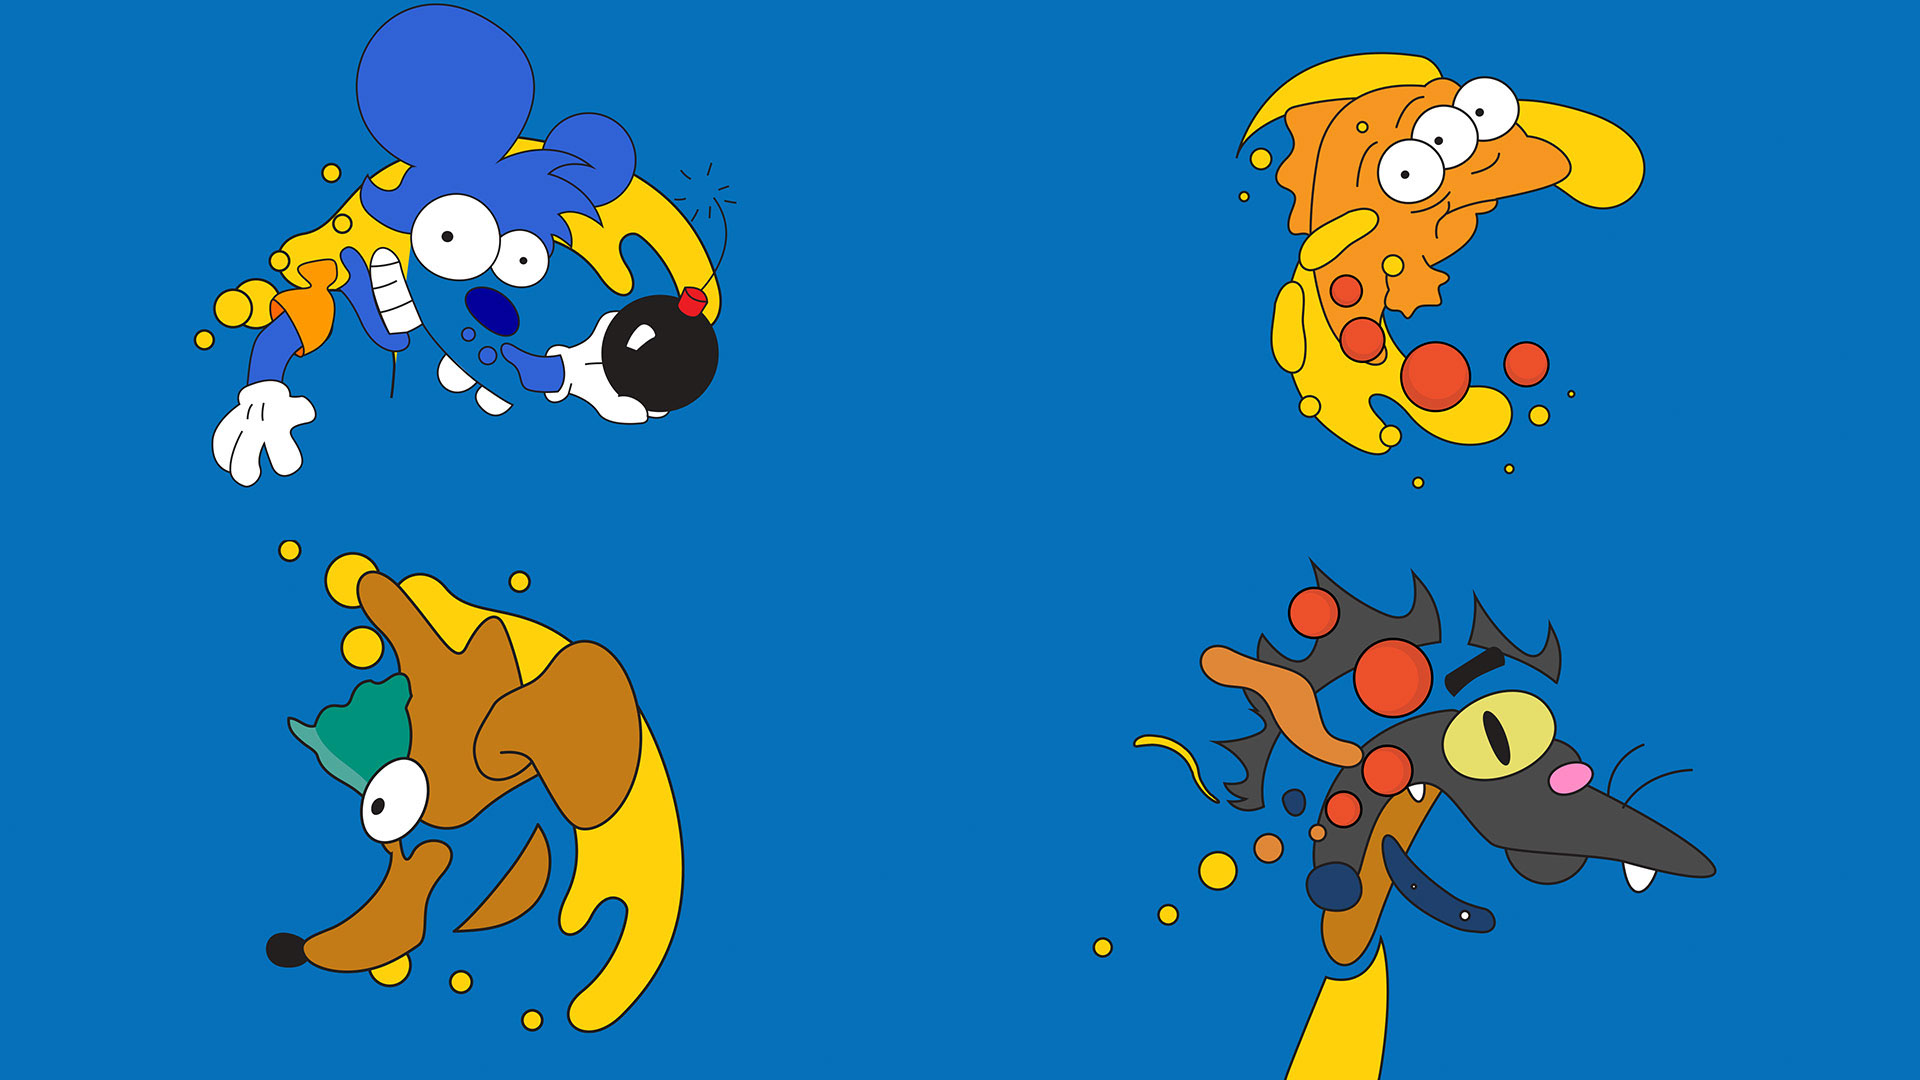 FX The Simpsons brand IDs on Behance